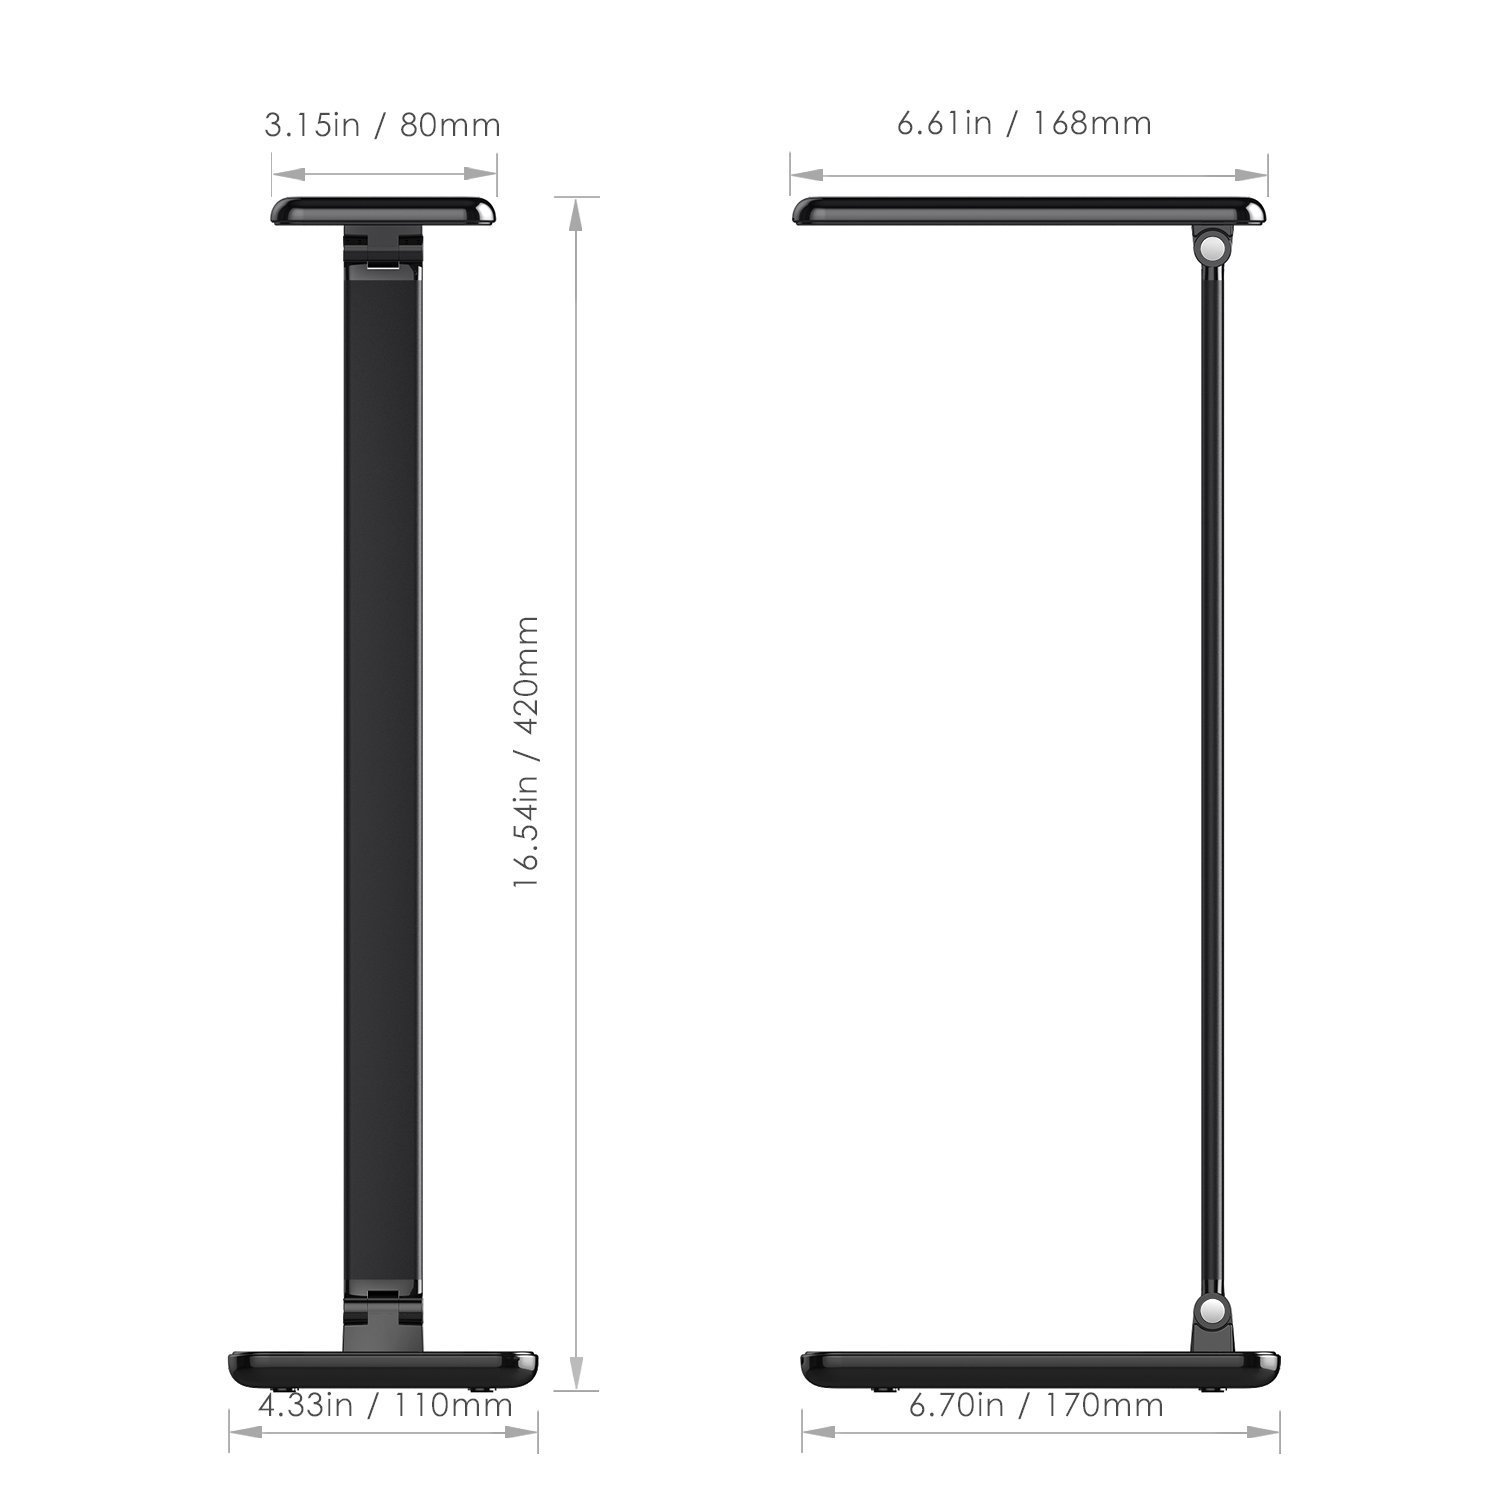 LED Desk Lamp 8W, Aglaia Eye-Caring Table Lamps with Dimmable Touch Control, Stepless Brightness Levels and Lighting Modes, Aluminum Alloy ARM, 1-Hour Auto Timer, Memory Function by Aglaia (Image #7)